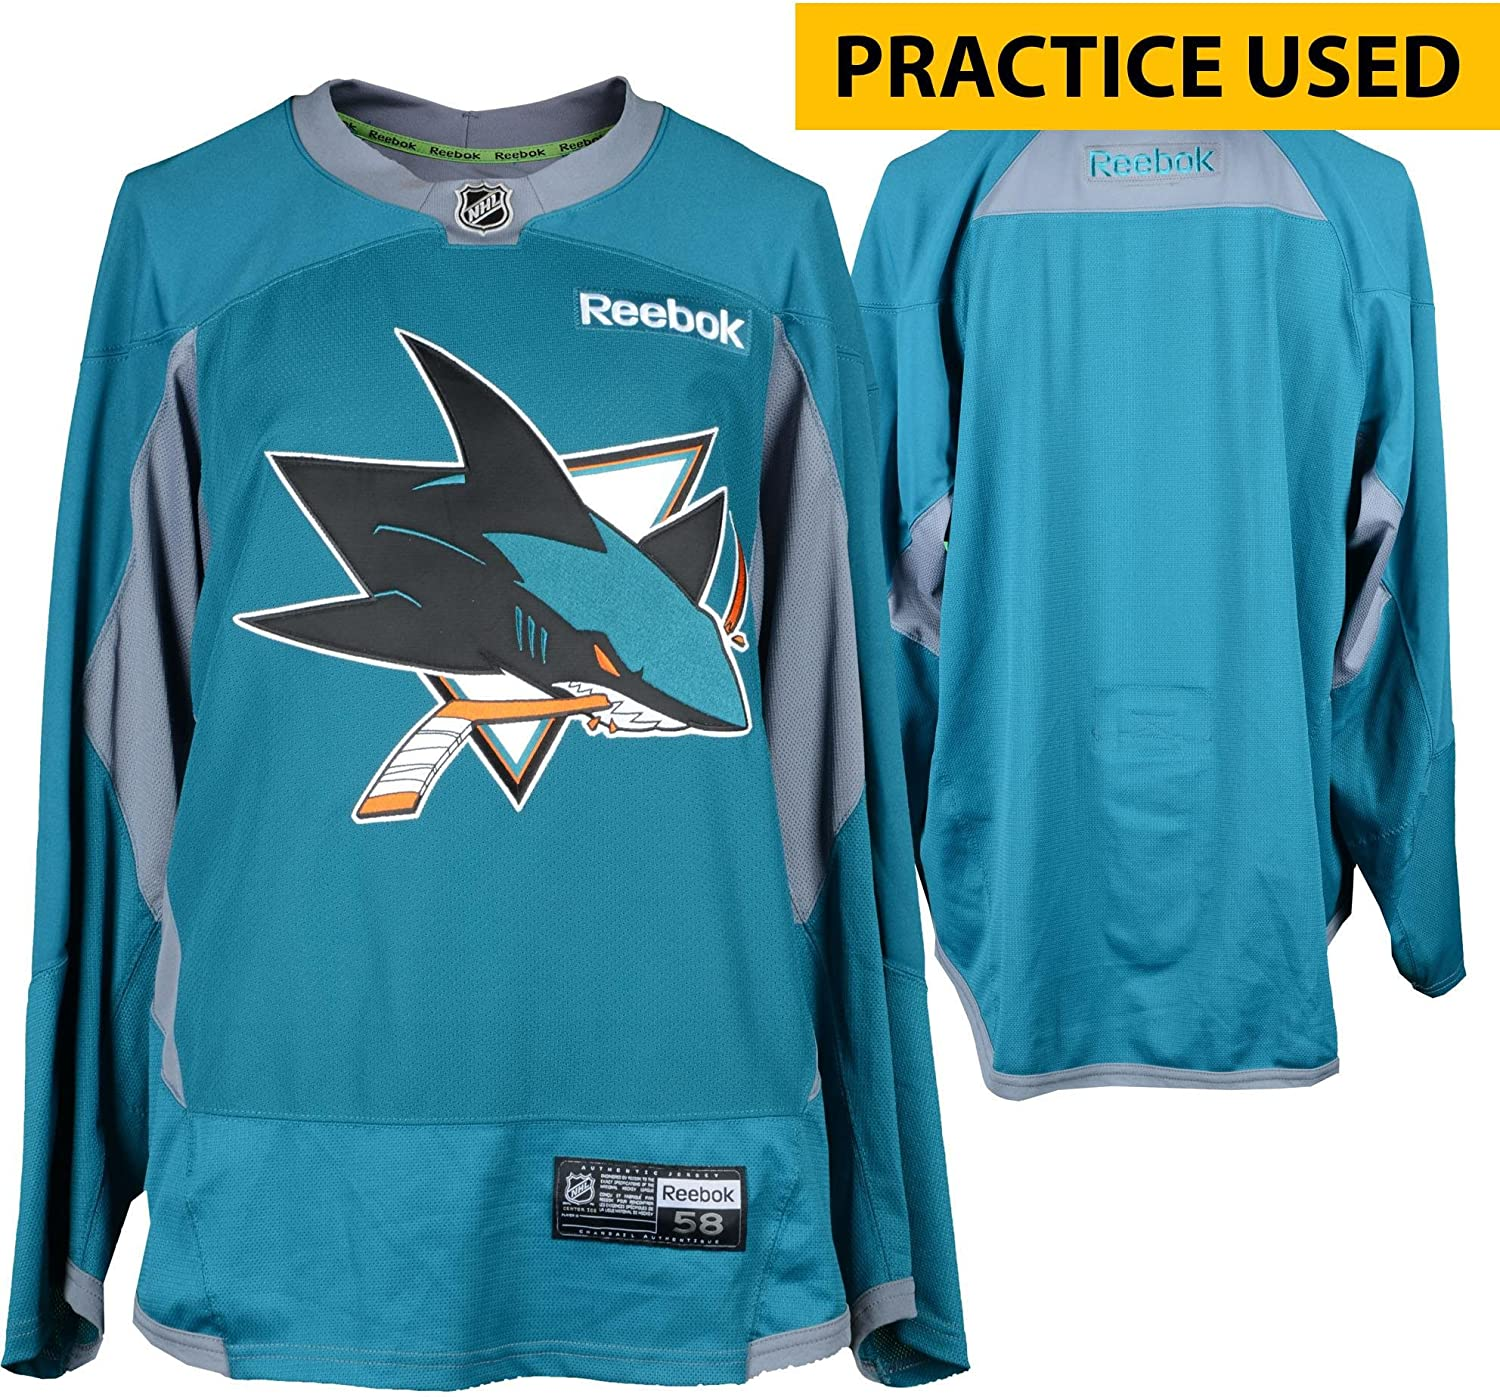 San Jose Sharks Practice-Used Teal Reebok Jersey - Size 58 - Fanatics  Authentic Certified - Game Used NHL Jerseys at Amazon s Sports Collectibles  Store 2e7352ffd45a